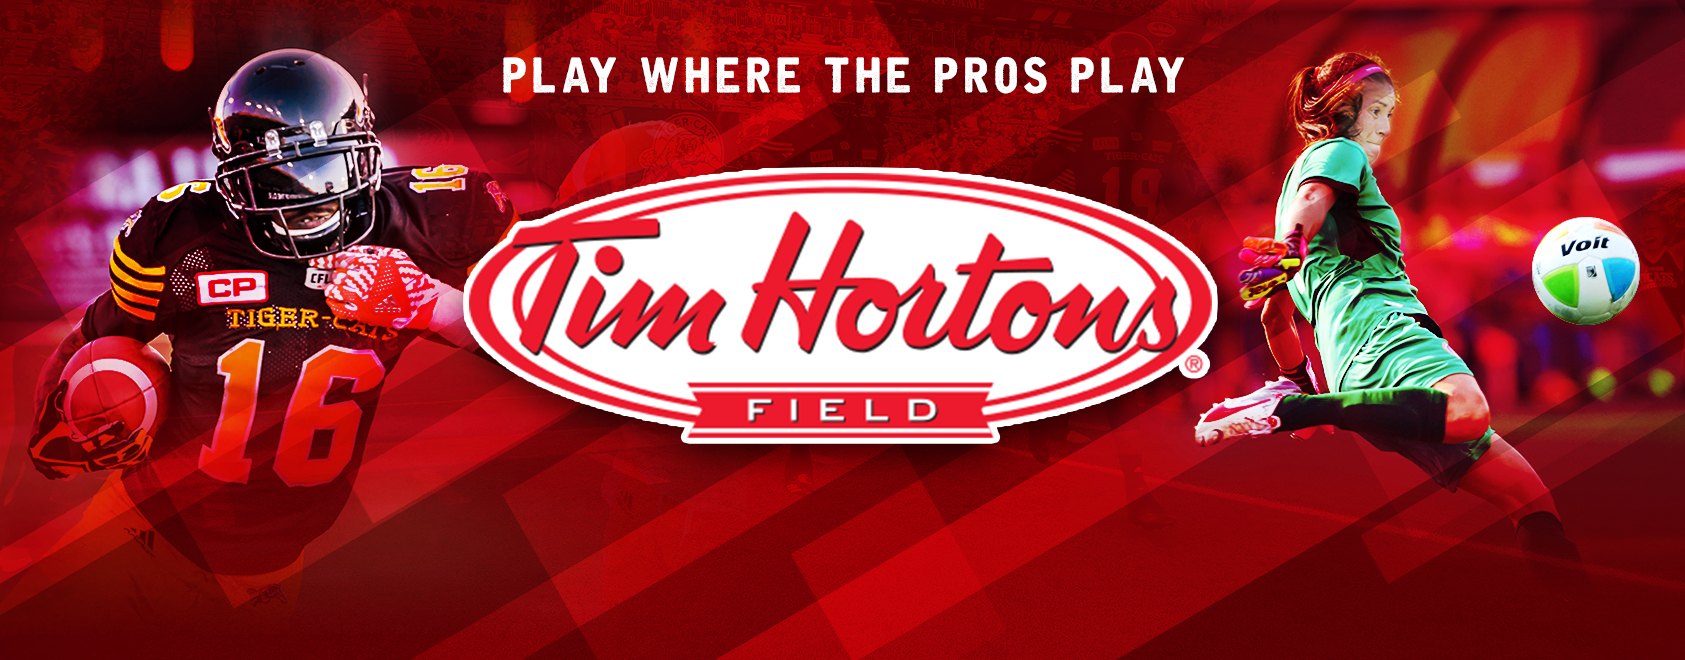 Play where the pros play - book your event at Tim Hortons Field